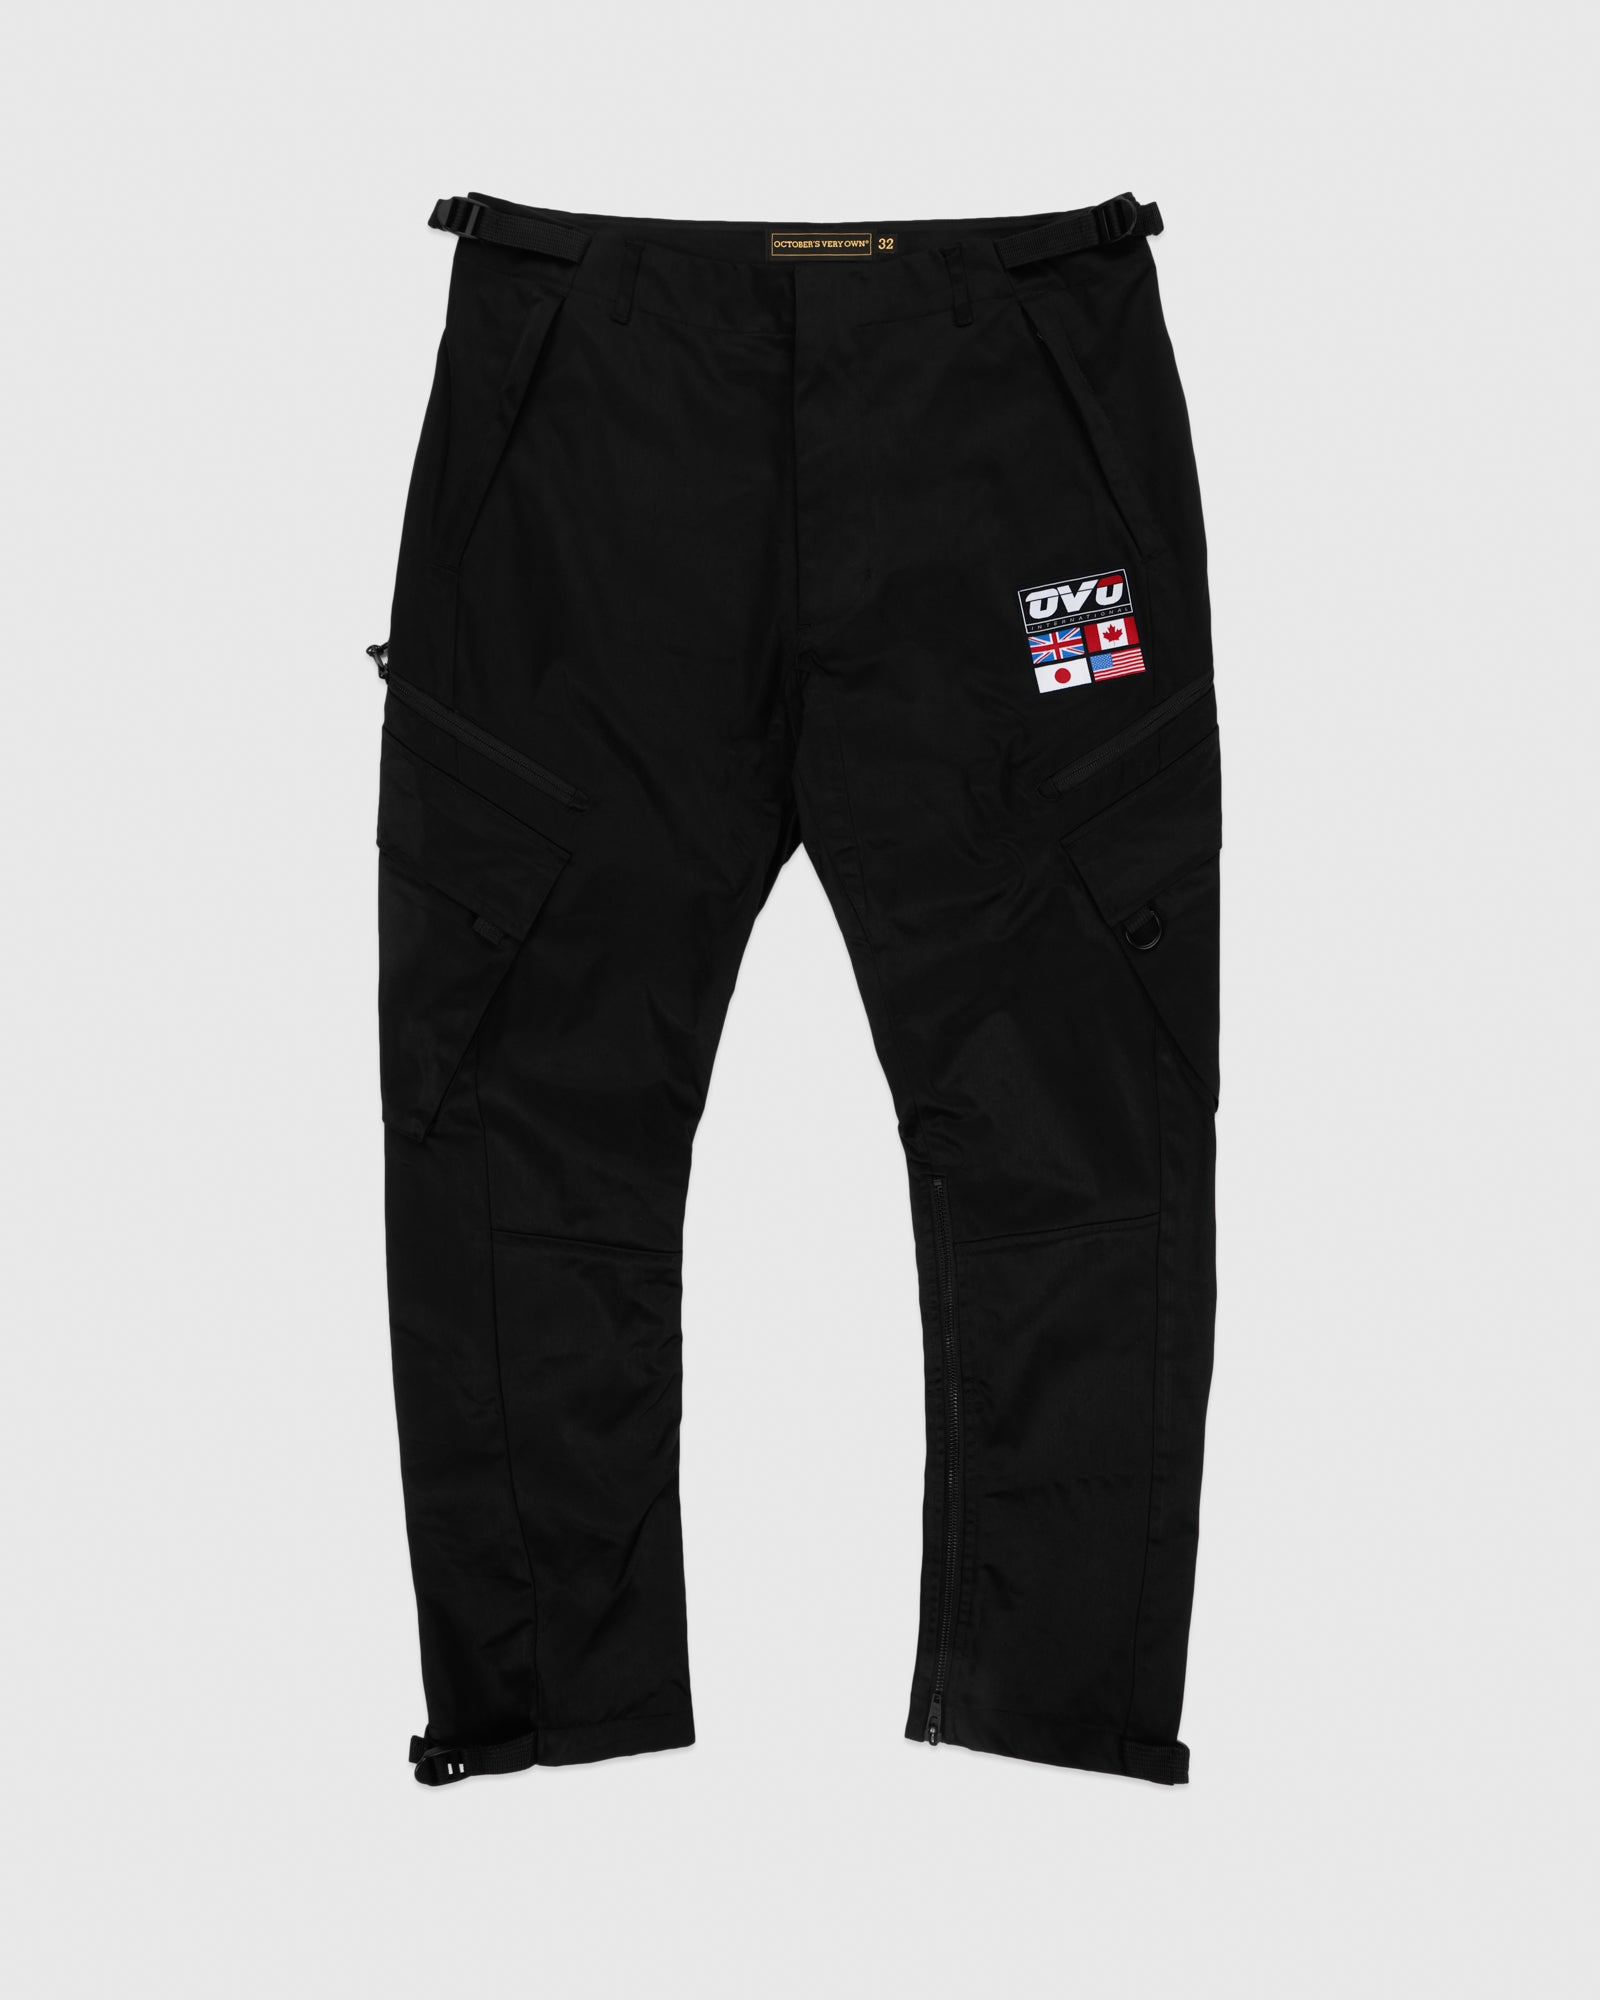 OVO INTERNATIONAL PANT - BLACK IMAGE #1